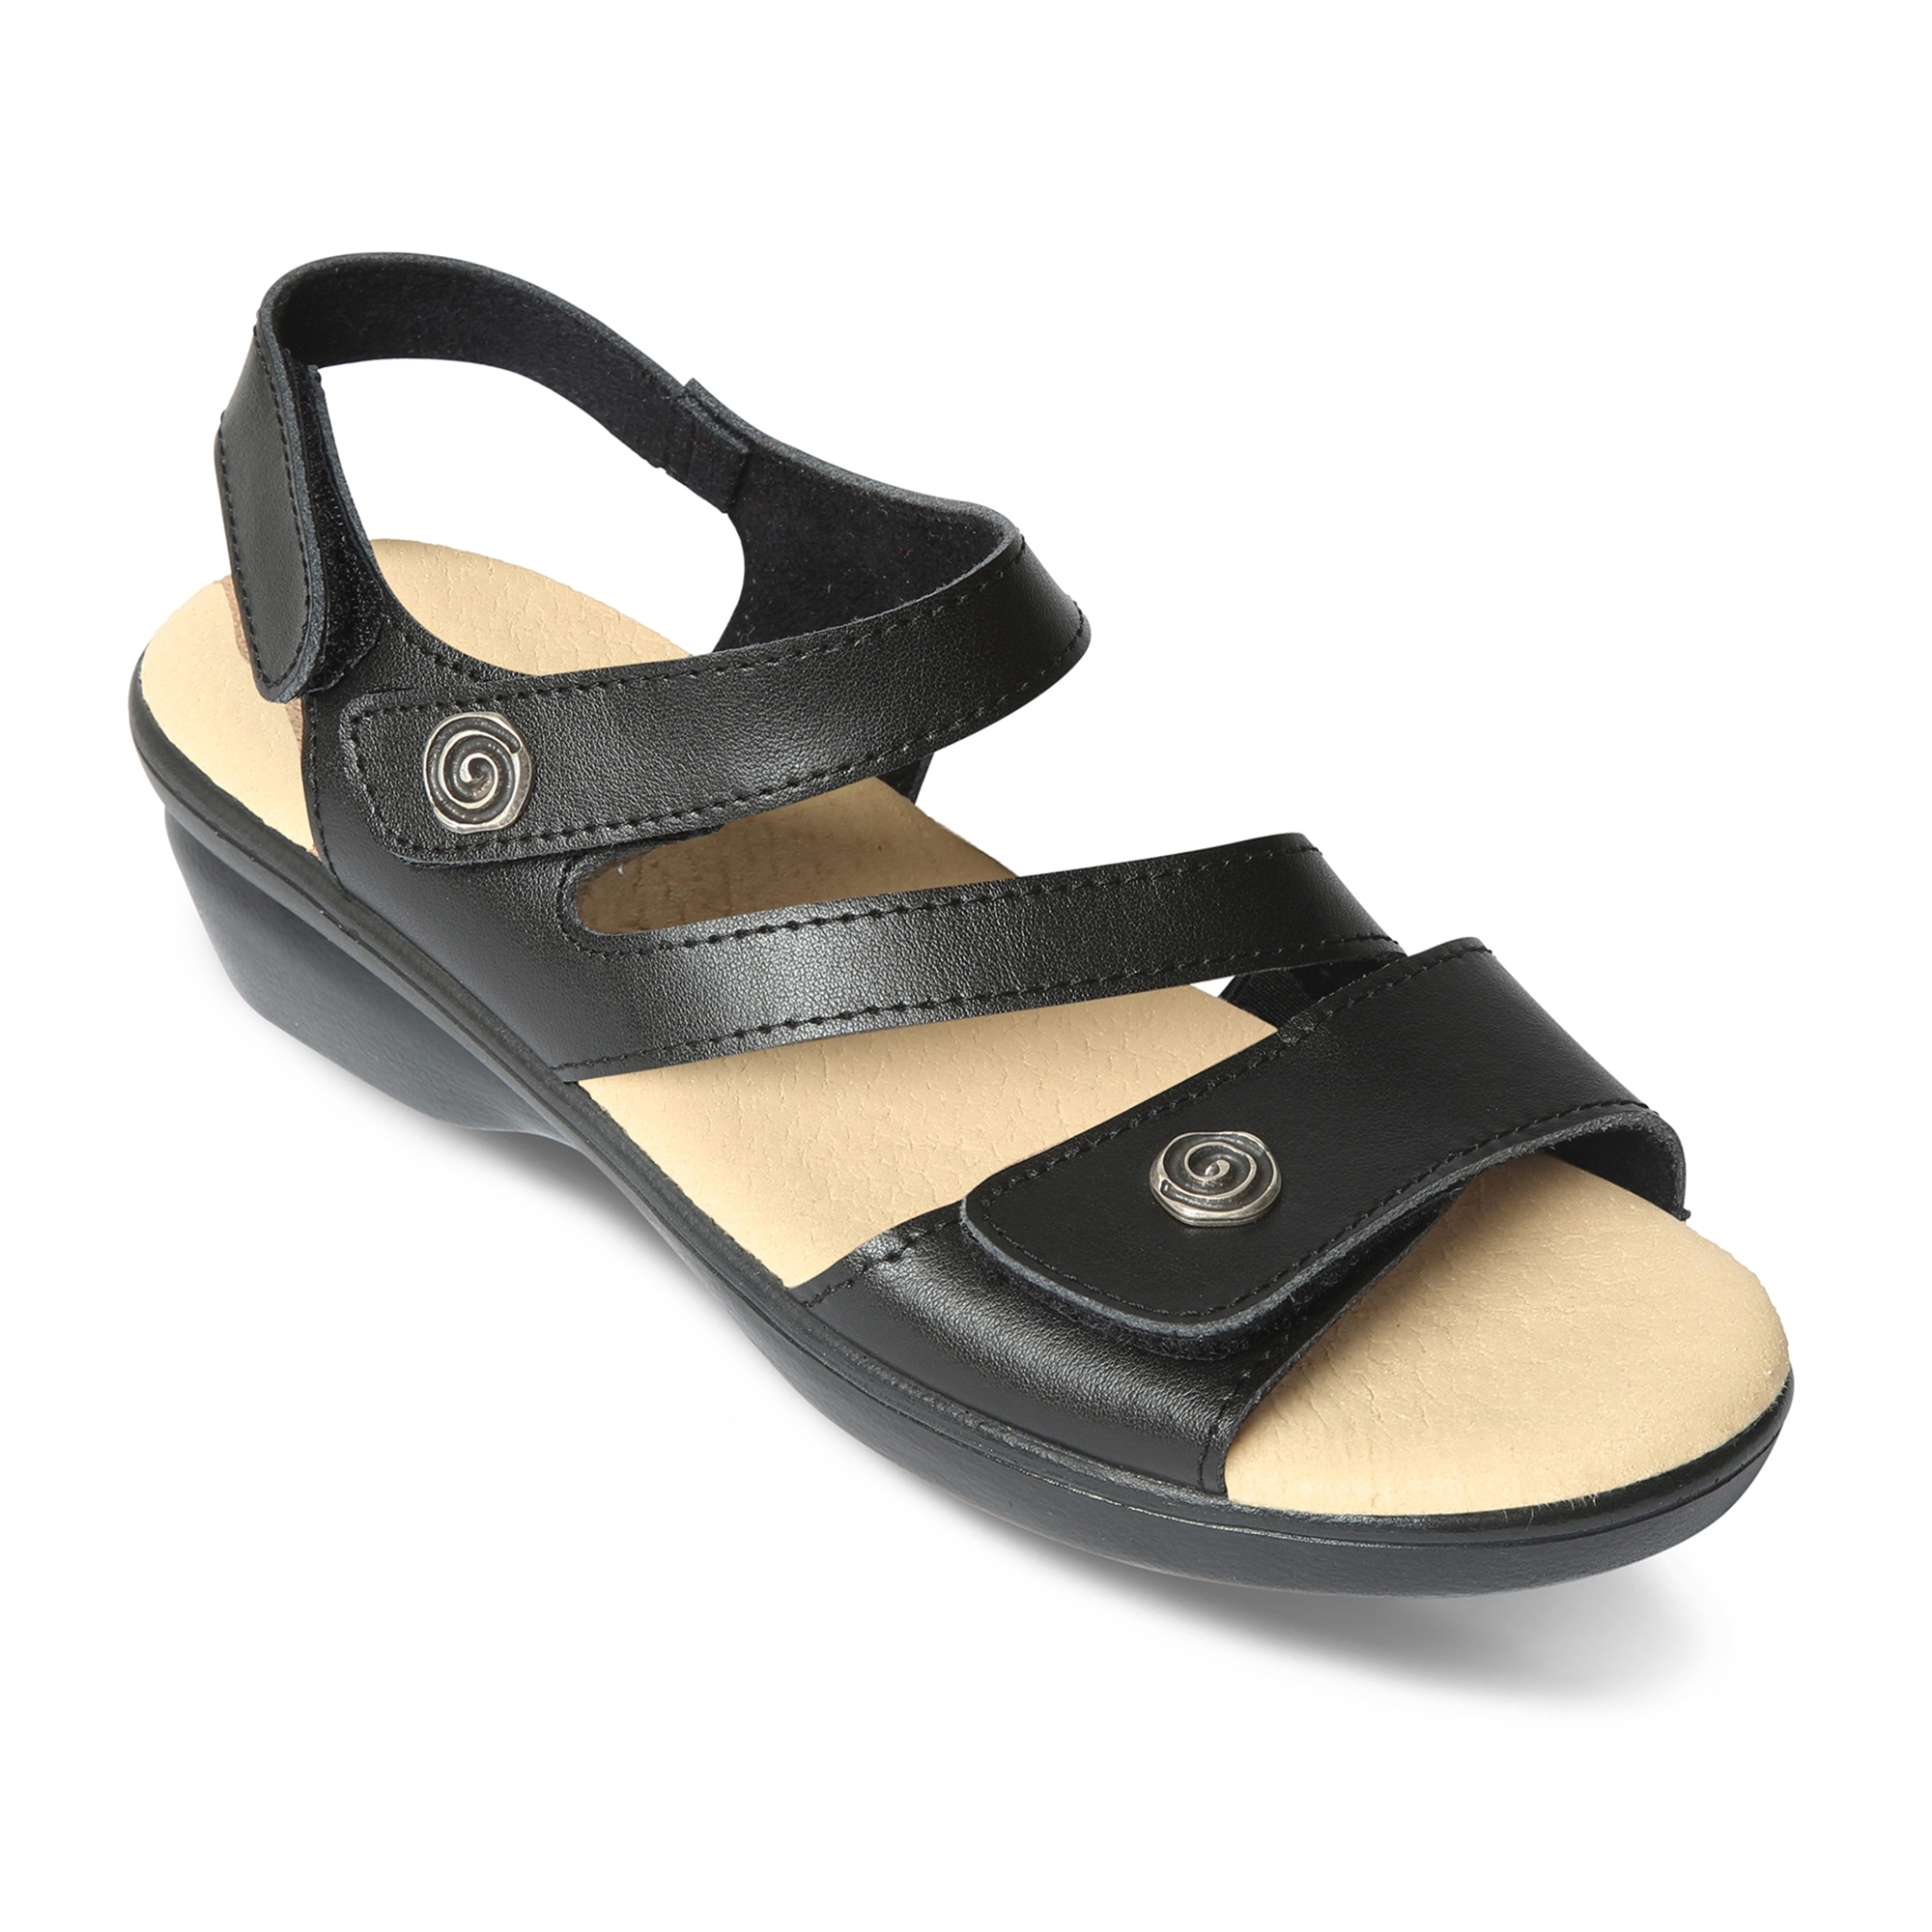 c764aa0f47348 Padders MADEIRA Ladies Leather Wide (E Fitting) Sandals Black   Shuperb